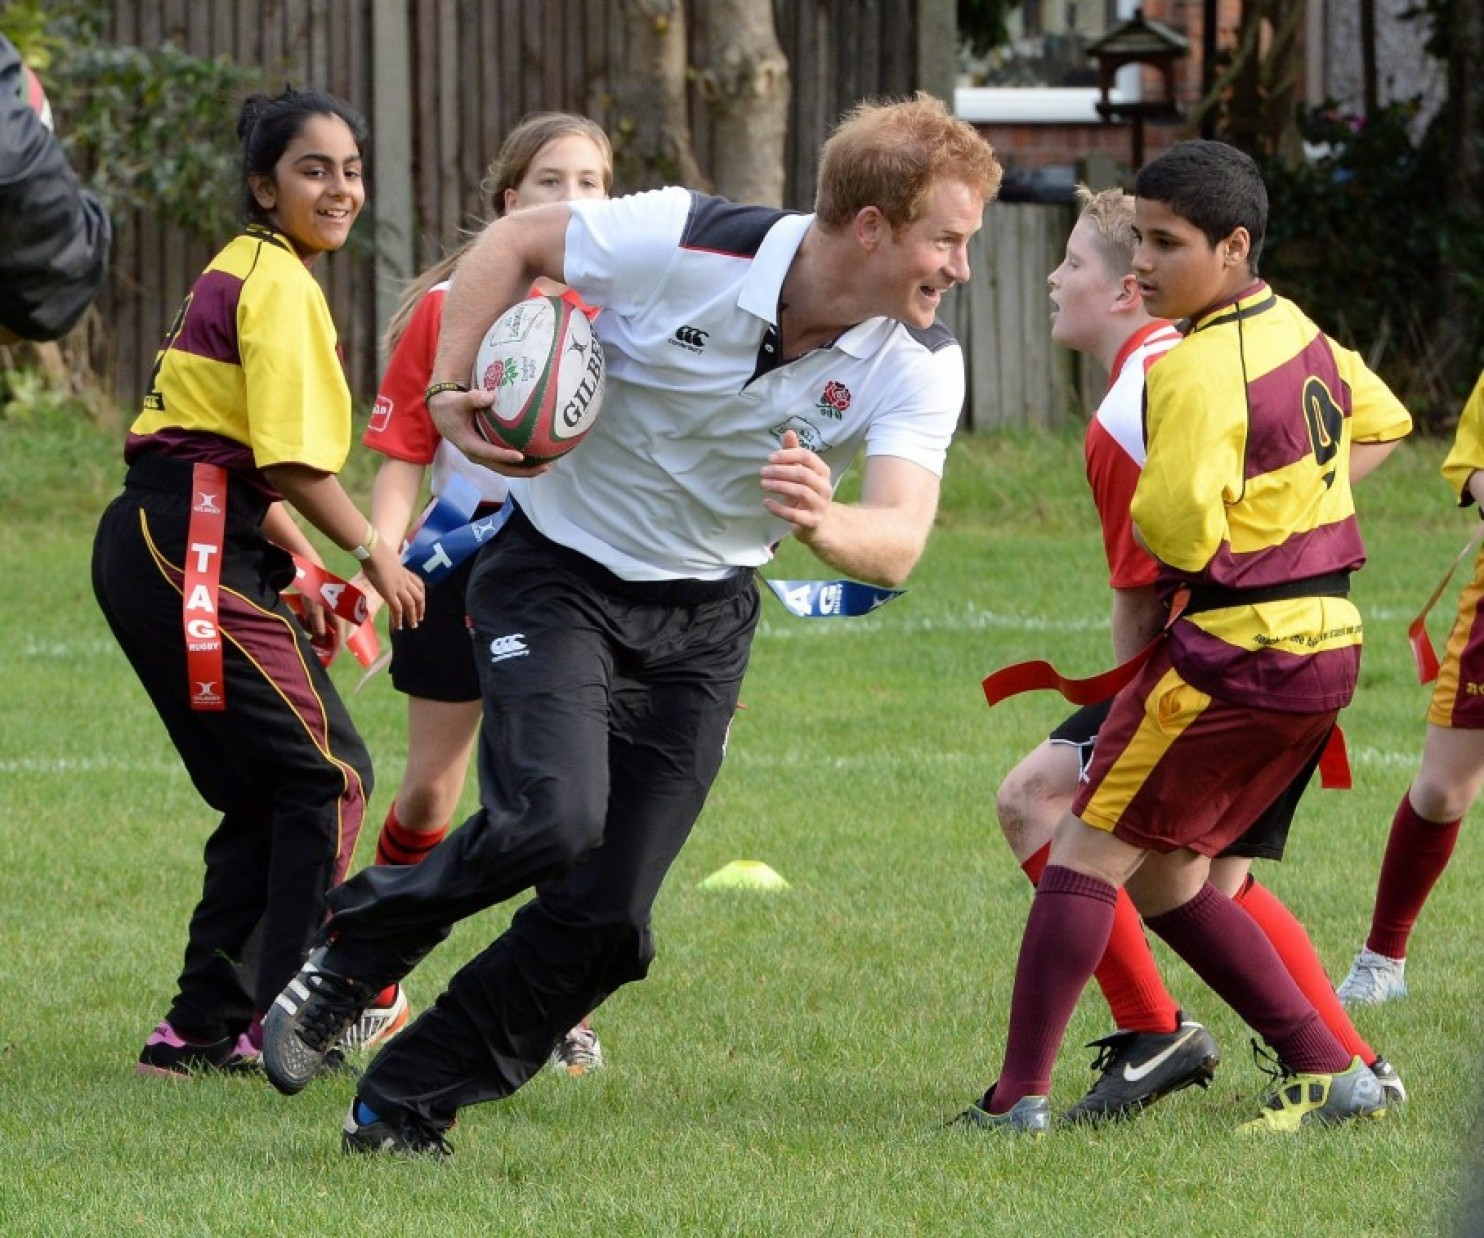 The premise of the All Schools project, which was created to support England's upcoming hosting duties for the 2015 Rugby World Cup